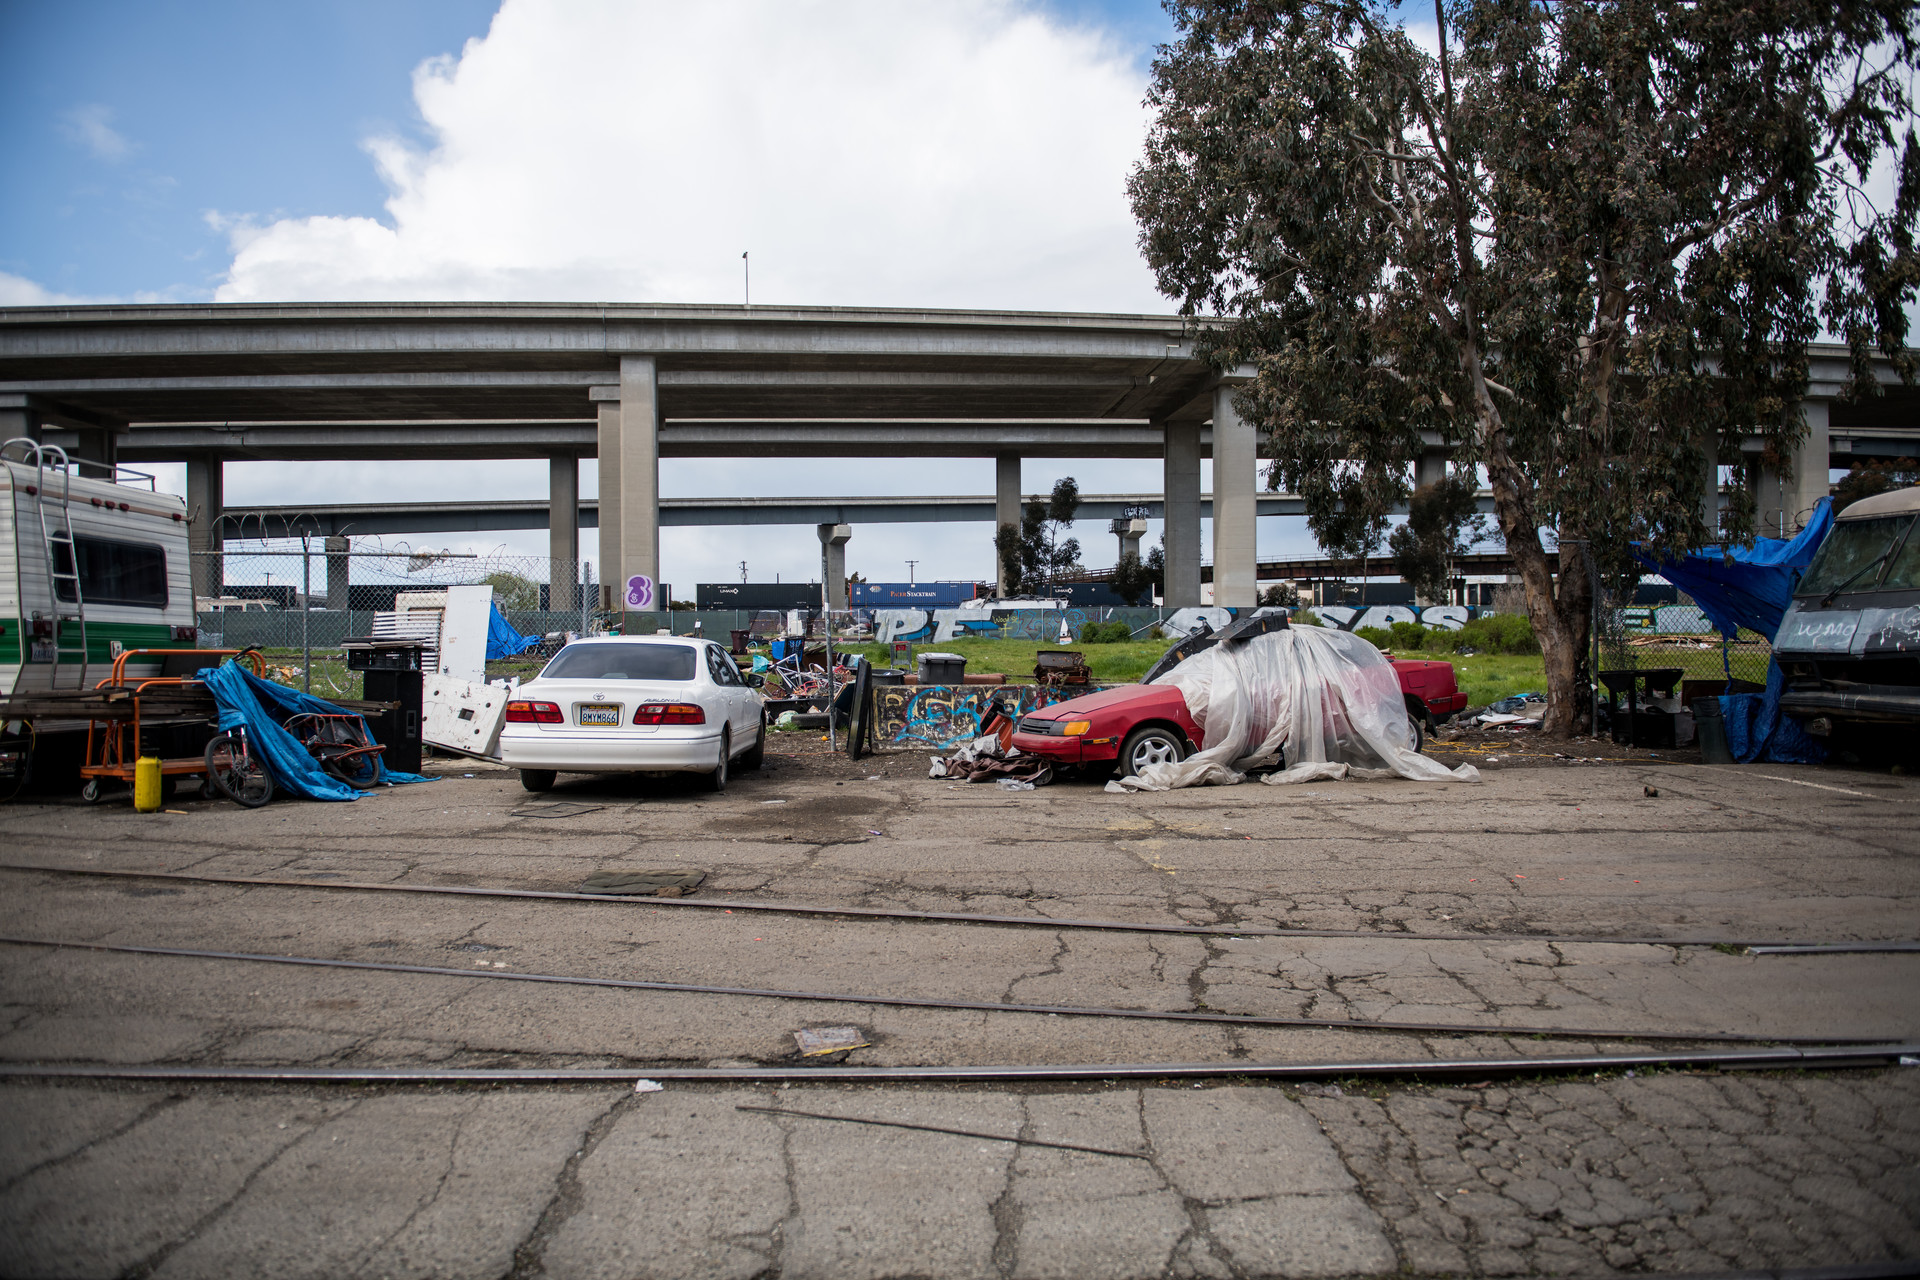 Encampments and motor homes in West Oakland